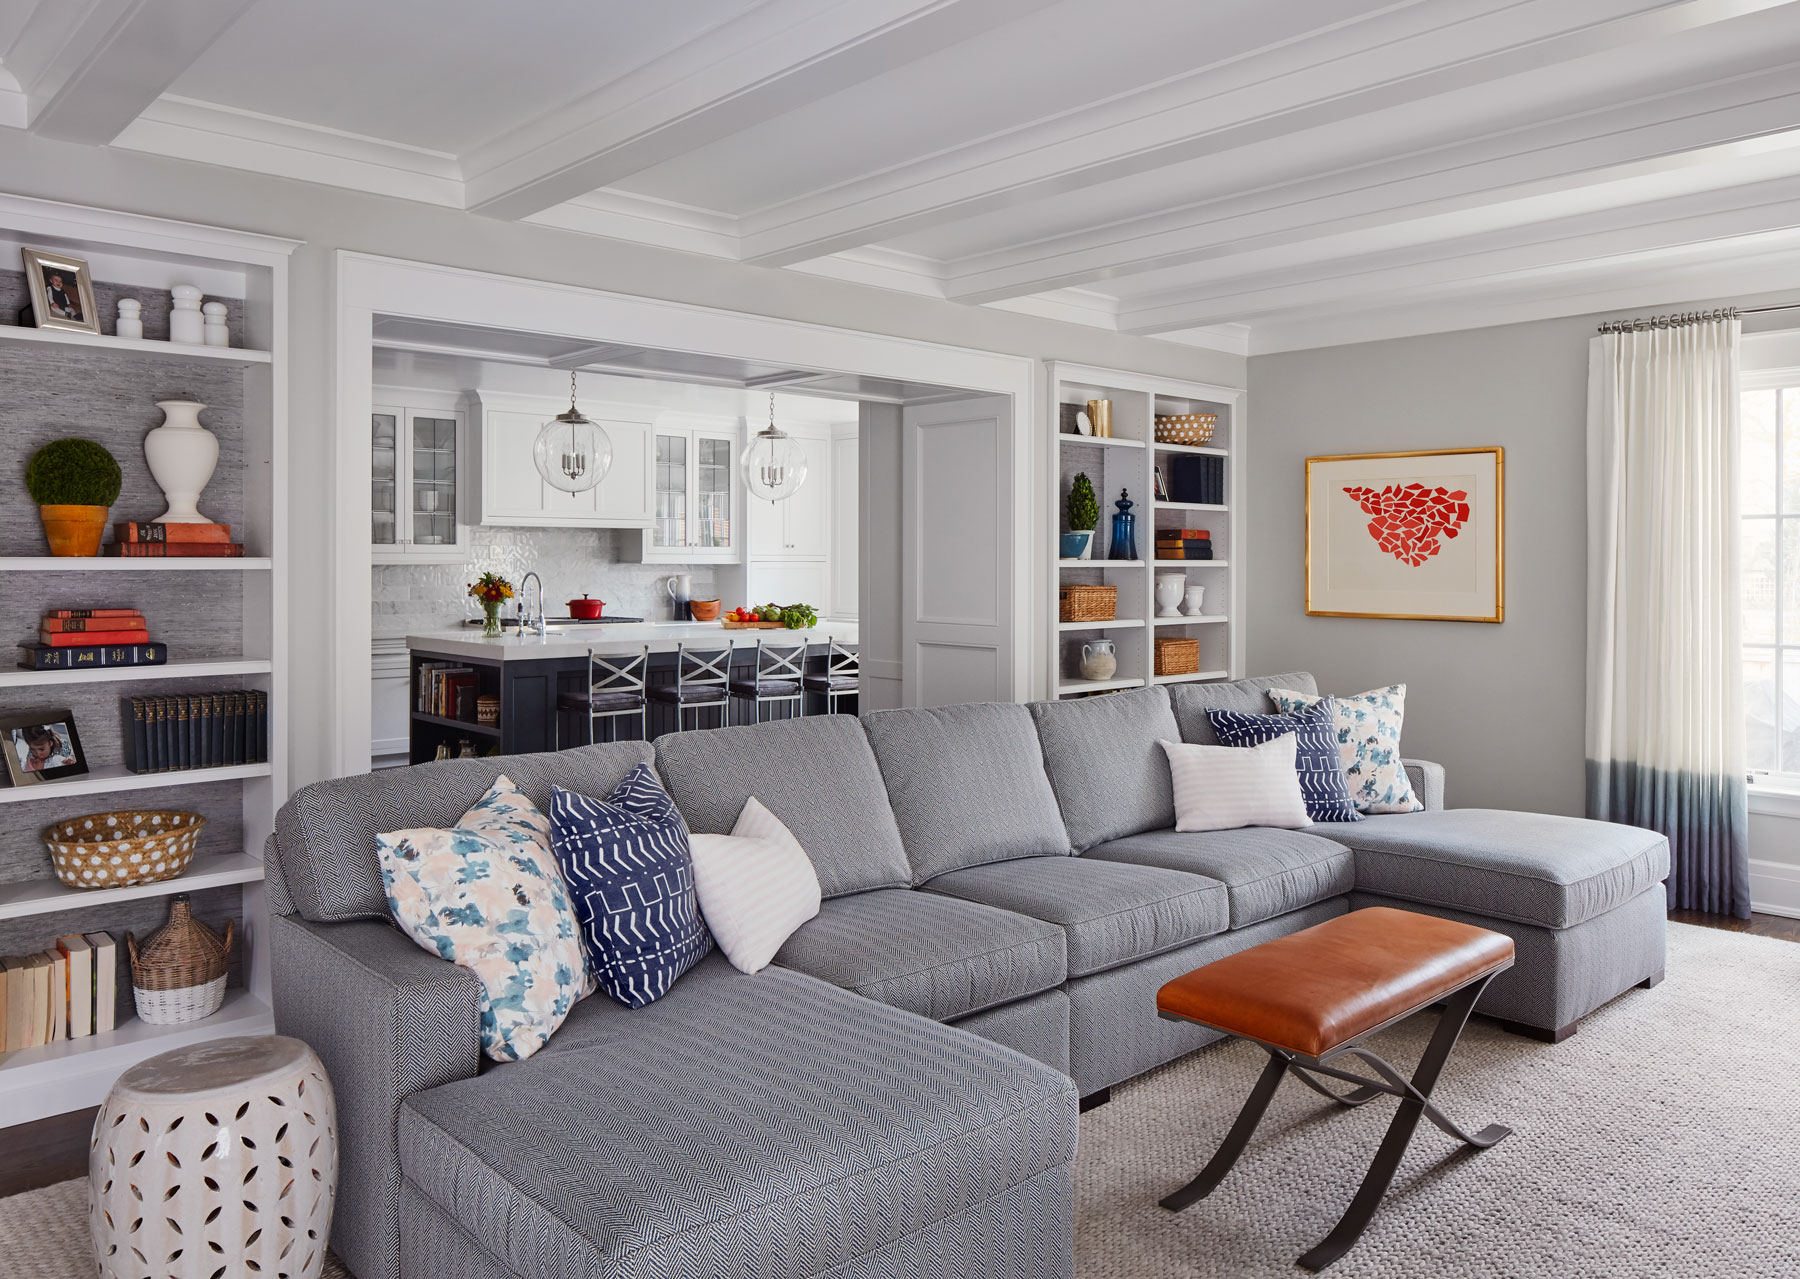 House Tour A Family Home With A Monochromatic Color Scheme